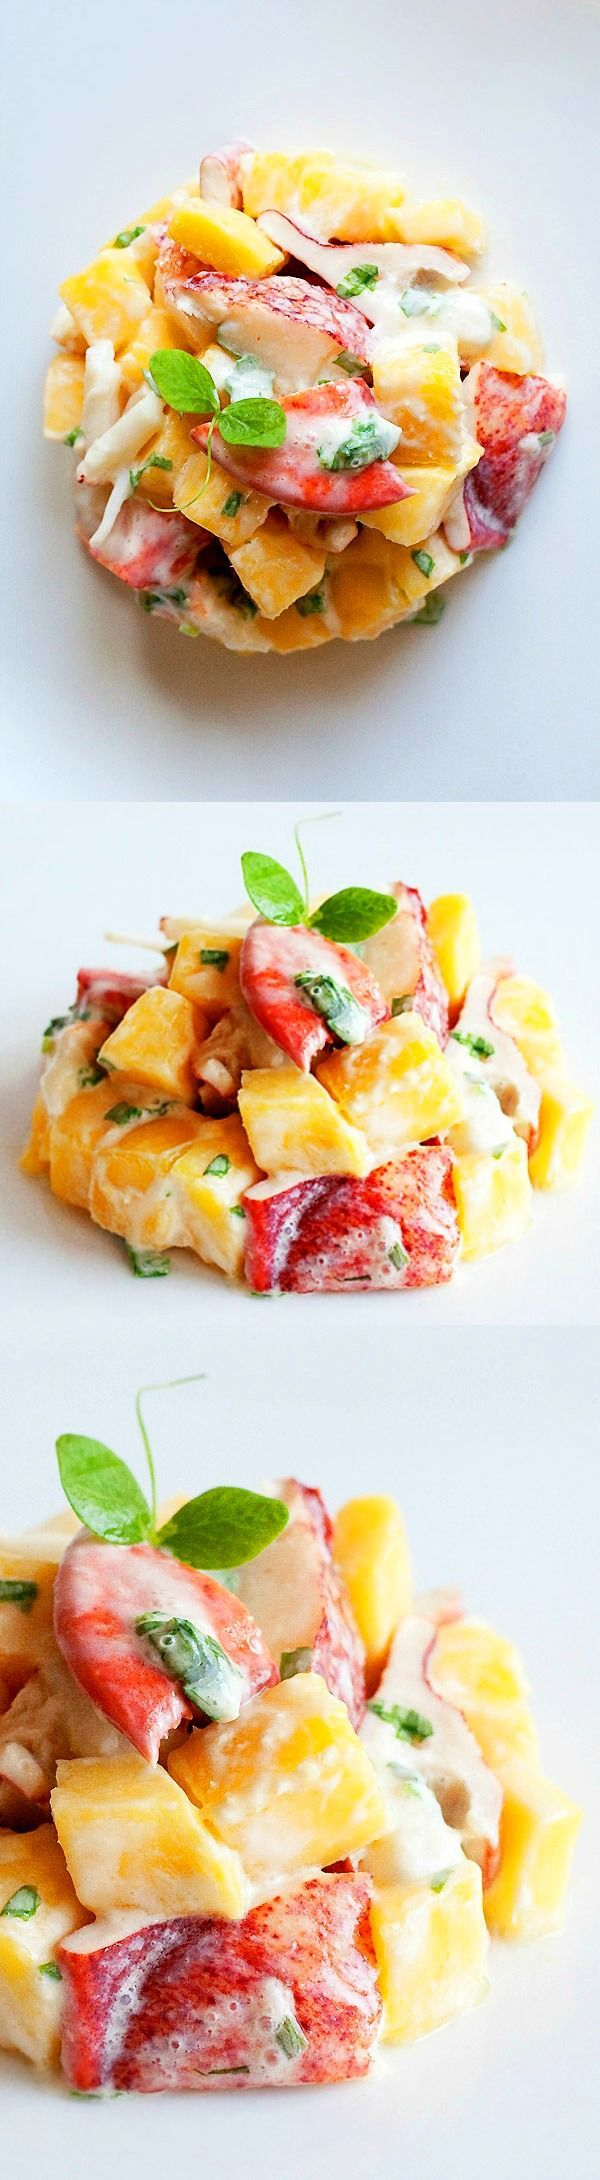 Mother's Day idea - Lobster and Mango Salad - amazing salad with lobster meat and fresh mango in a light honey cream dressing!!   rasamalaysia.com